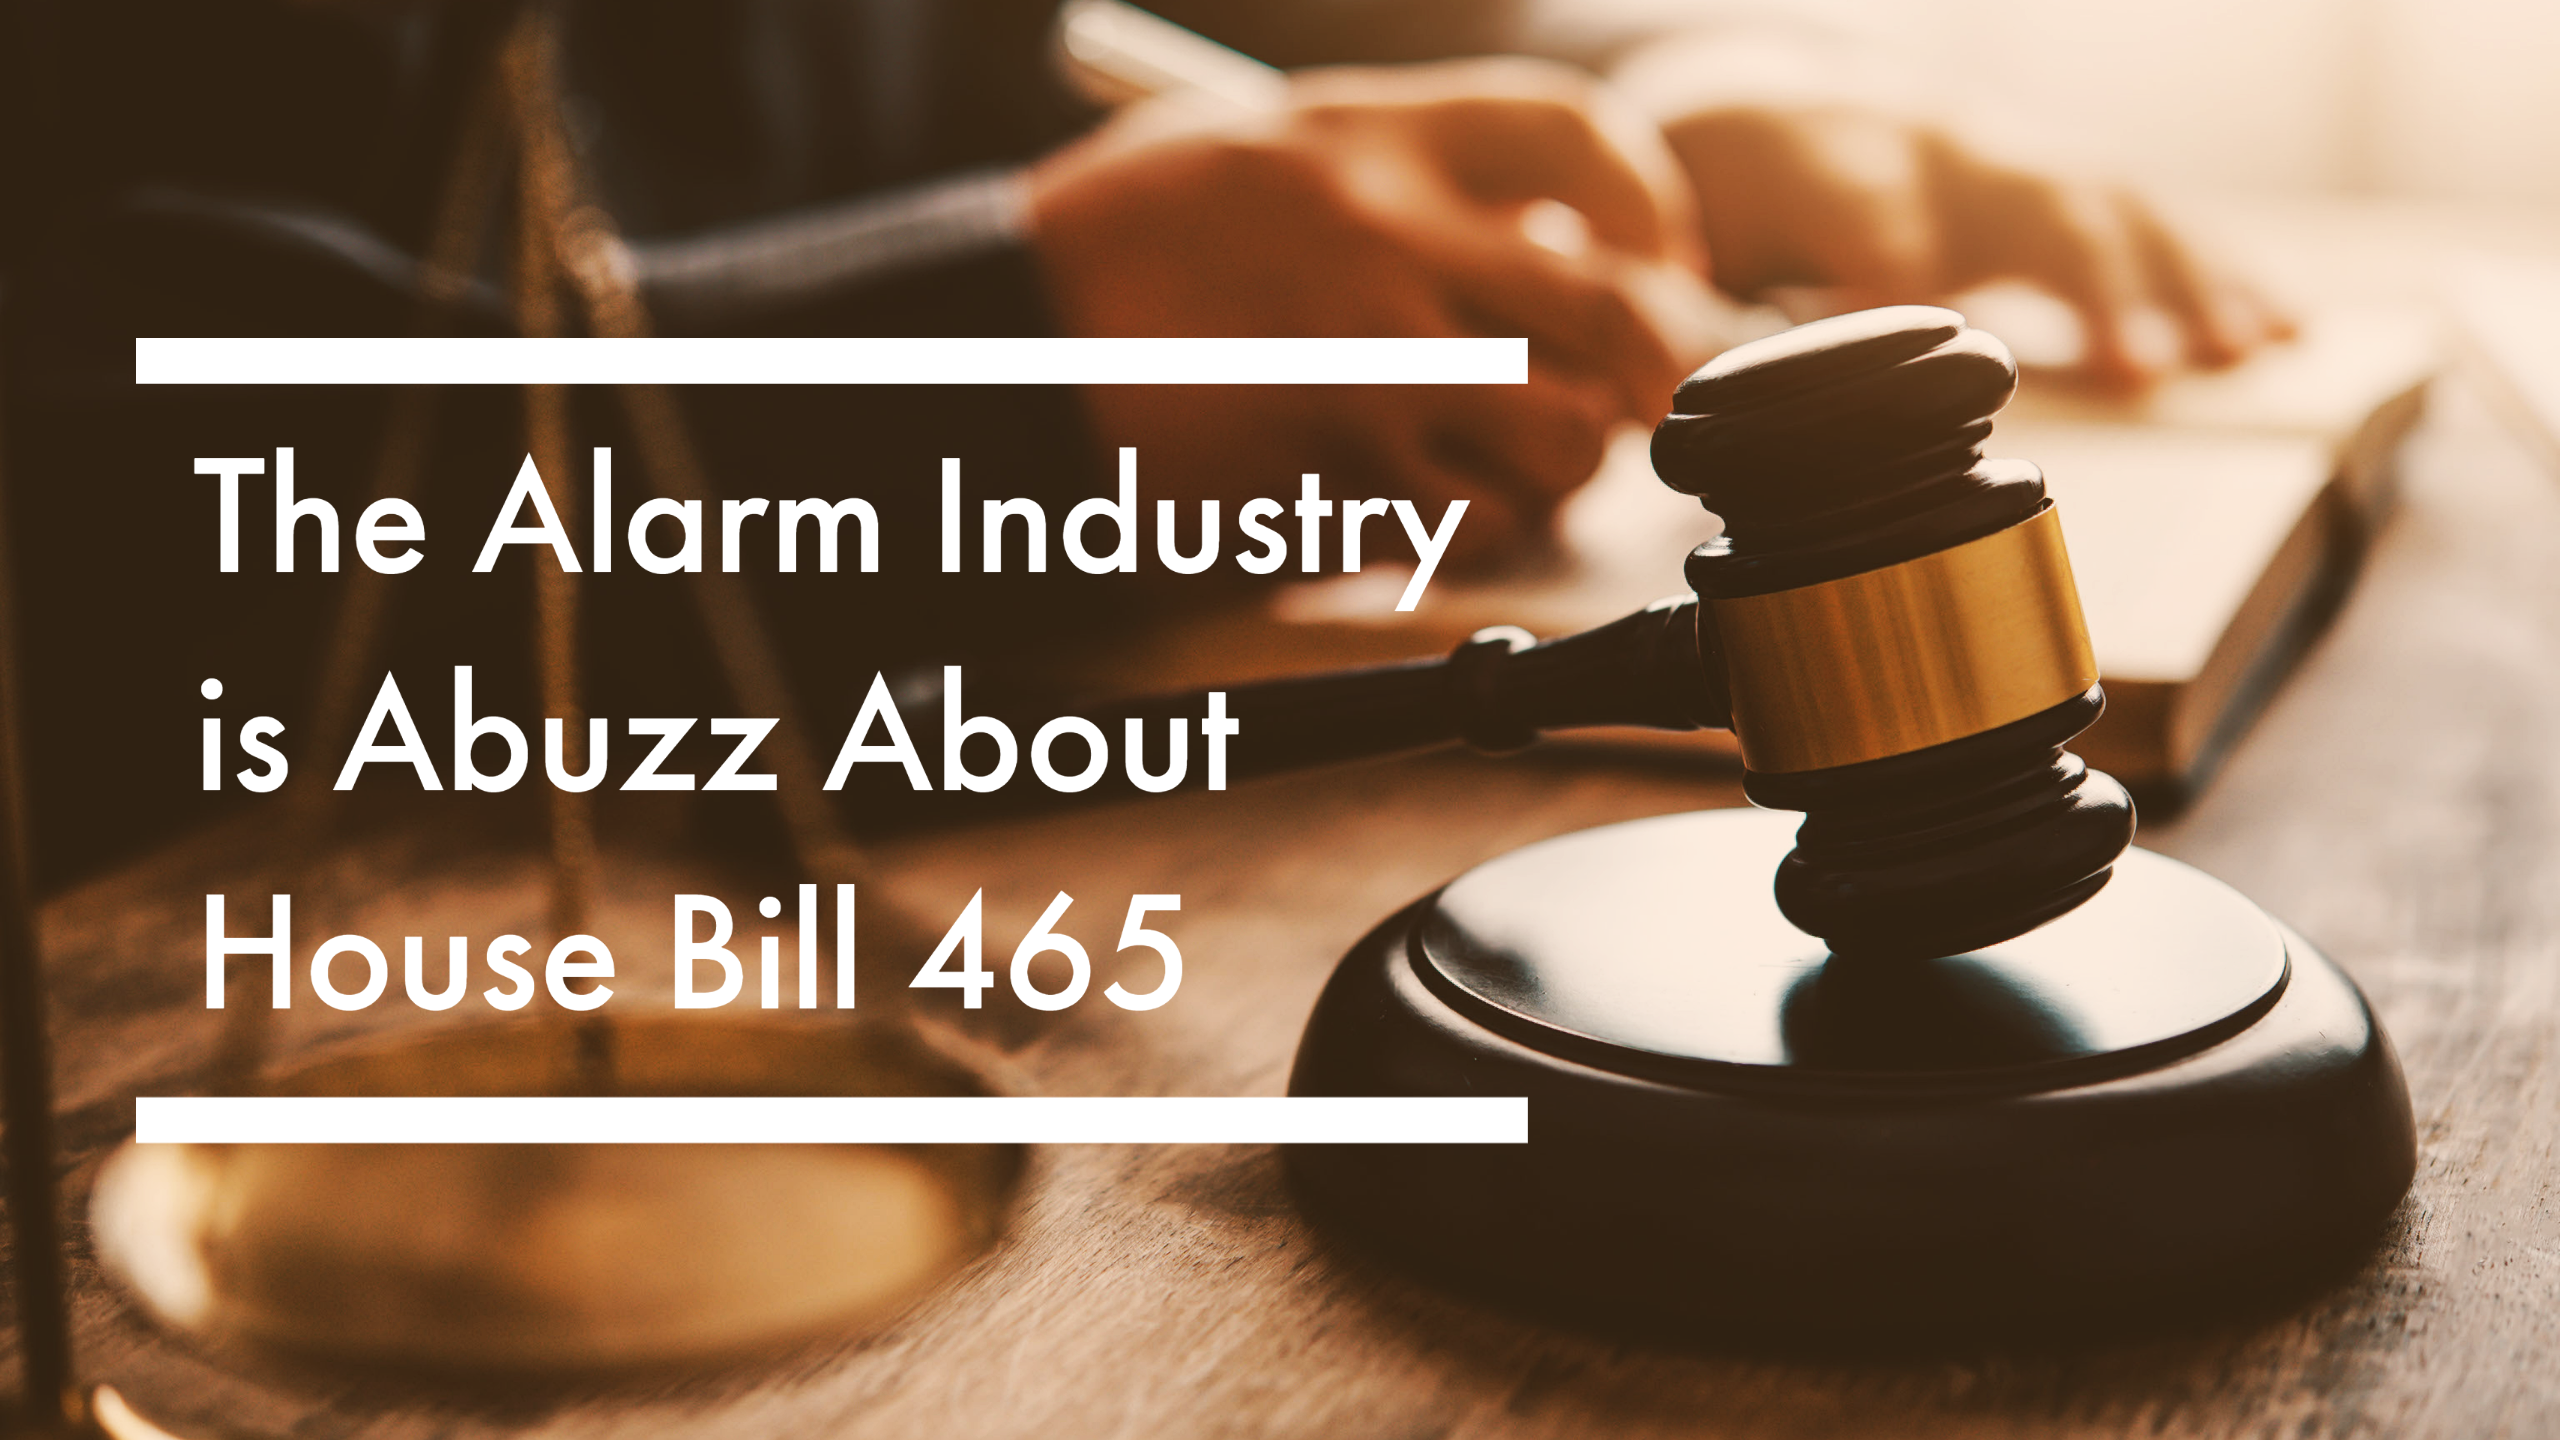 The Alarm Industry is Abuzz About House Bill 465